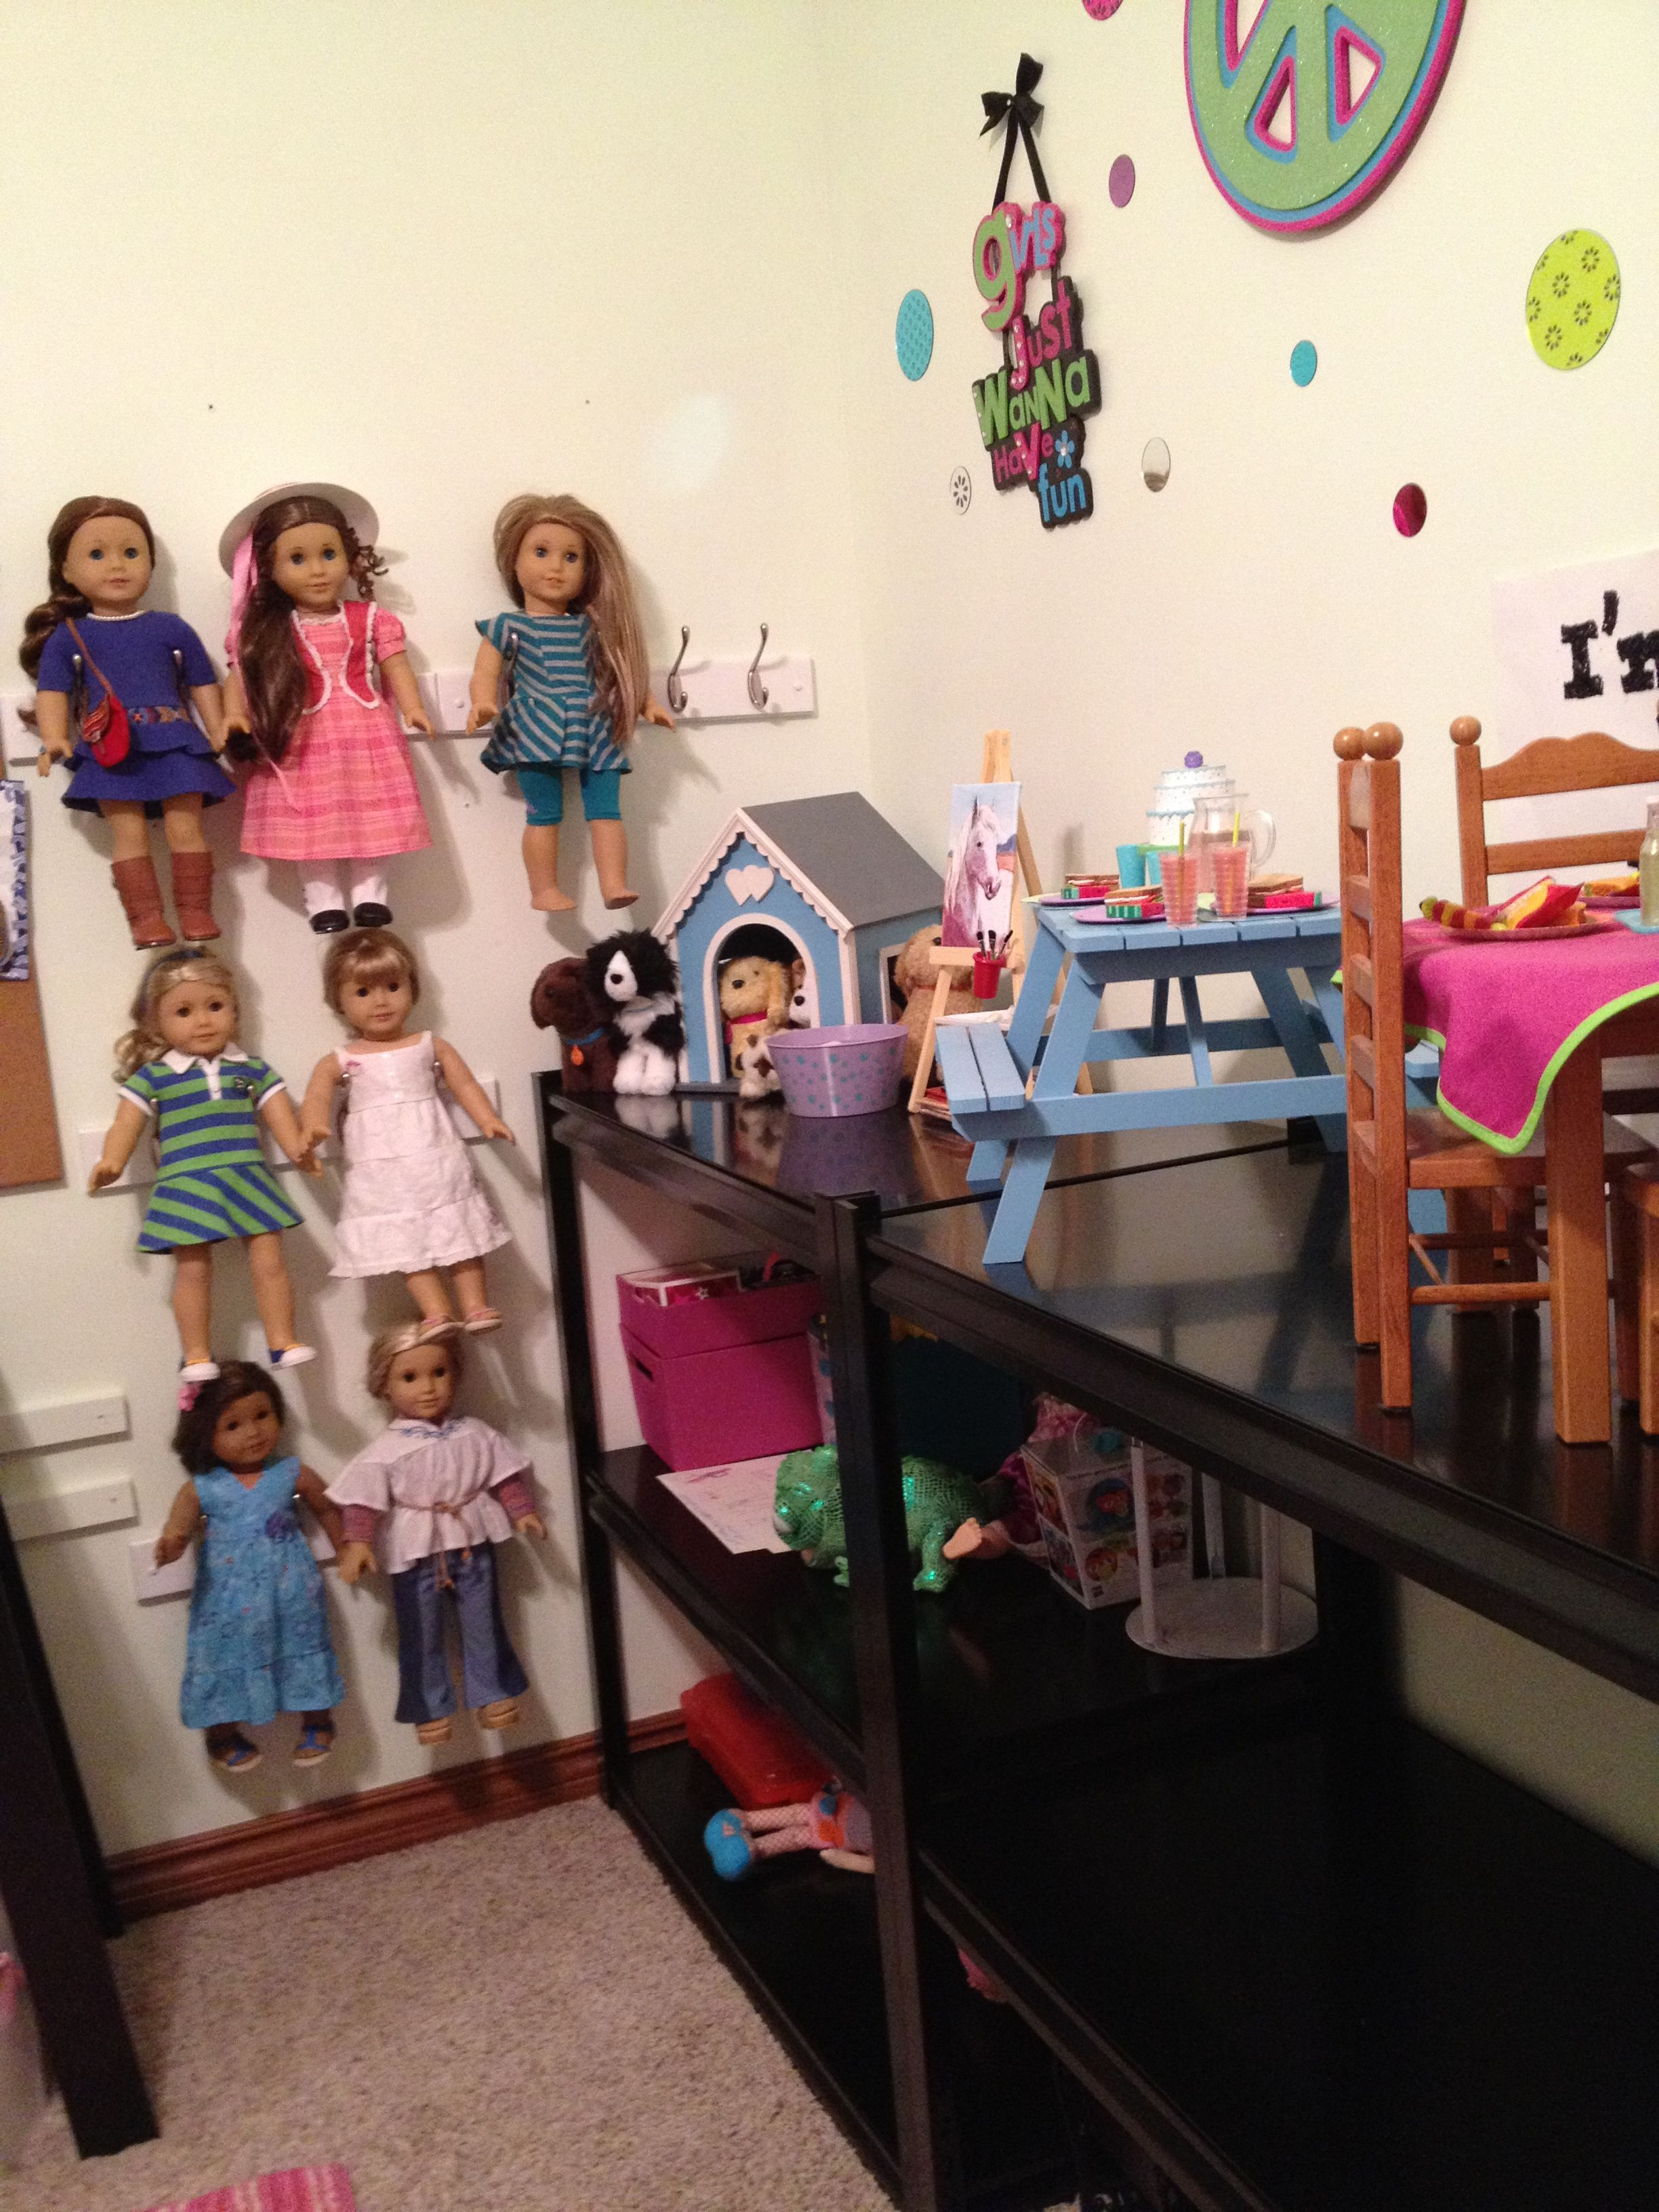 American Girl Doll Storage 15 Rail Hooks From Lowes Doll